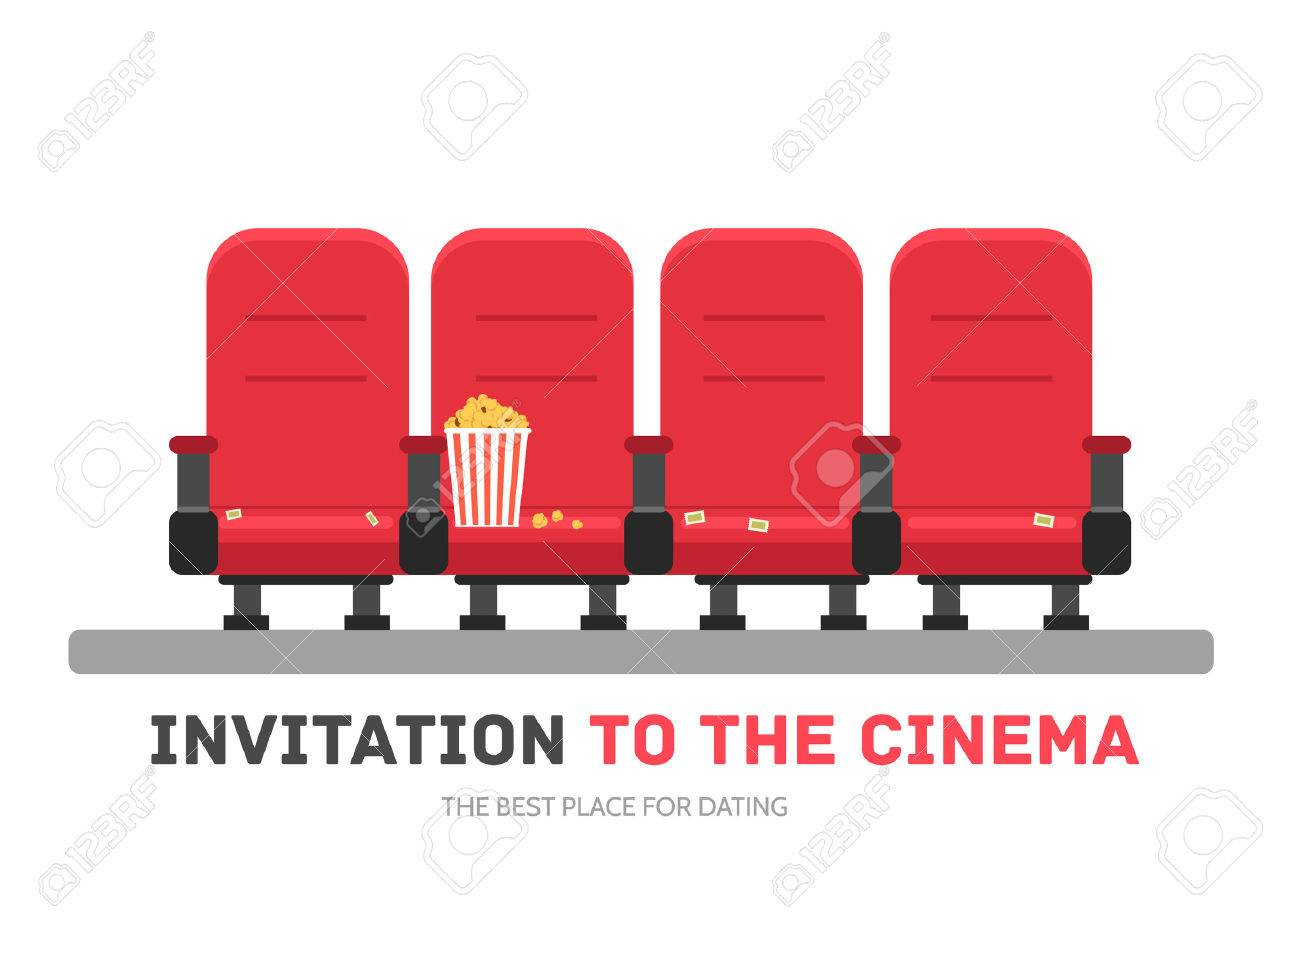 An invitation to the movie in flat design background concept an invitation to the movie in flat design background concept armchairs cinema with popcorn stopboris Image collections